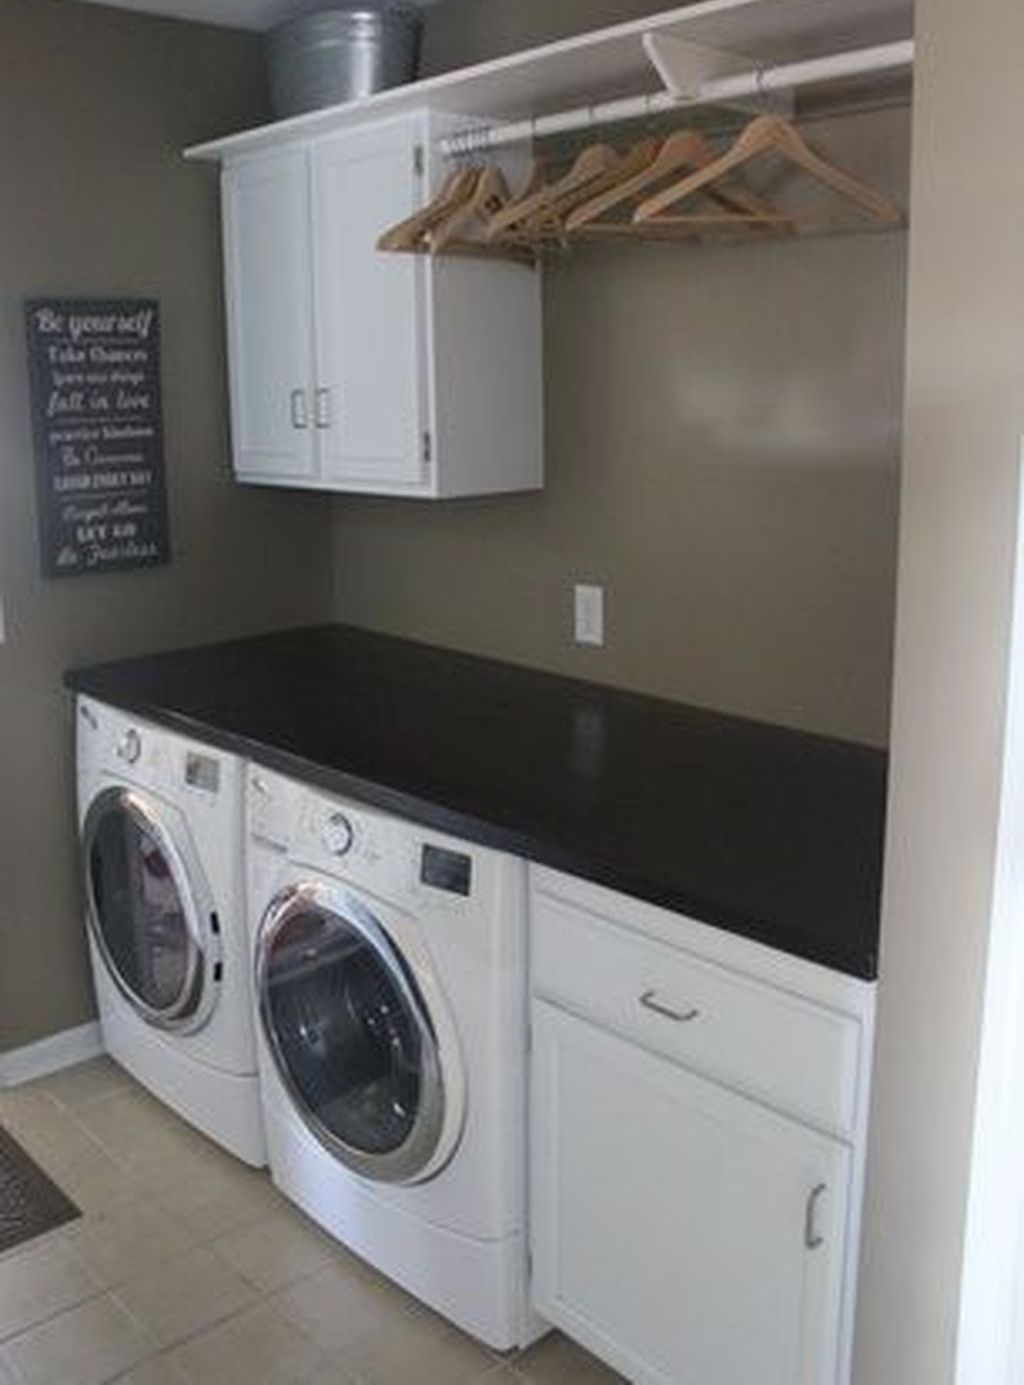 33 Minimalist Small Laundry Room Design And Decor Ideas images